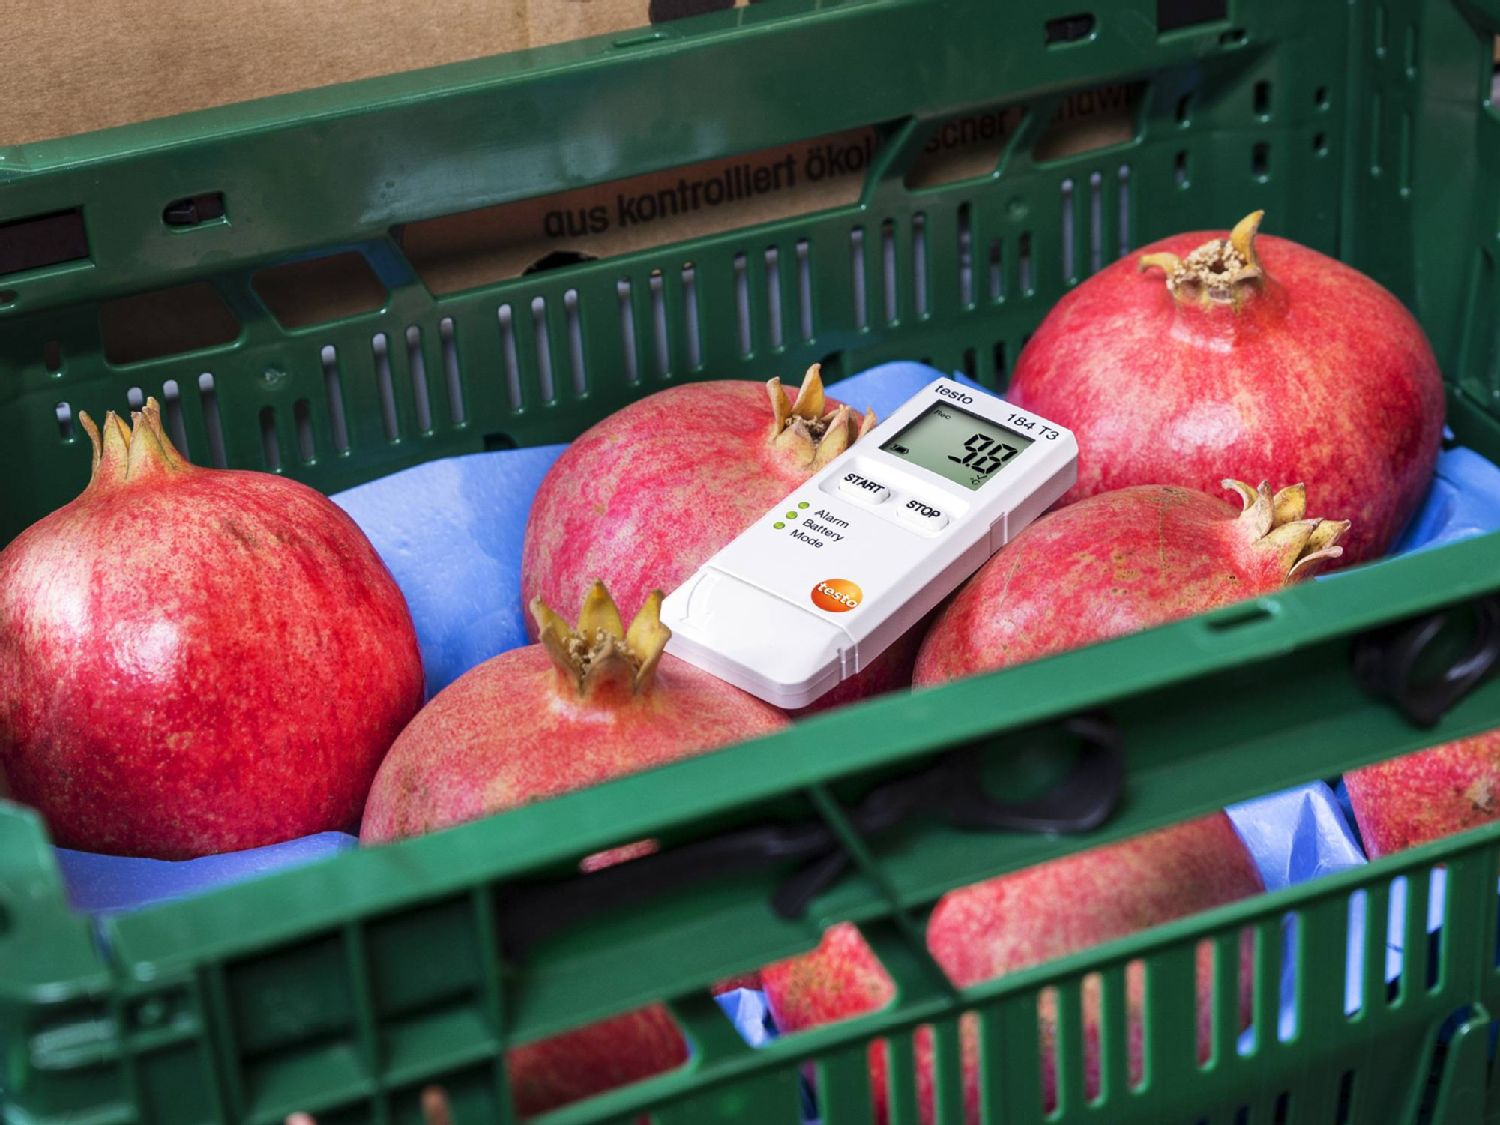 Shock data logger for food transport